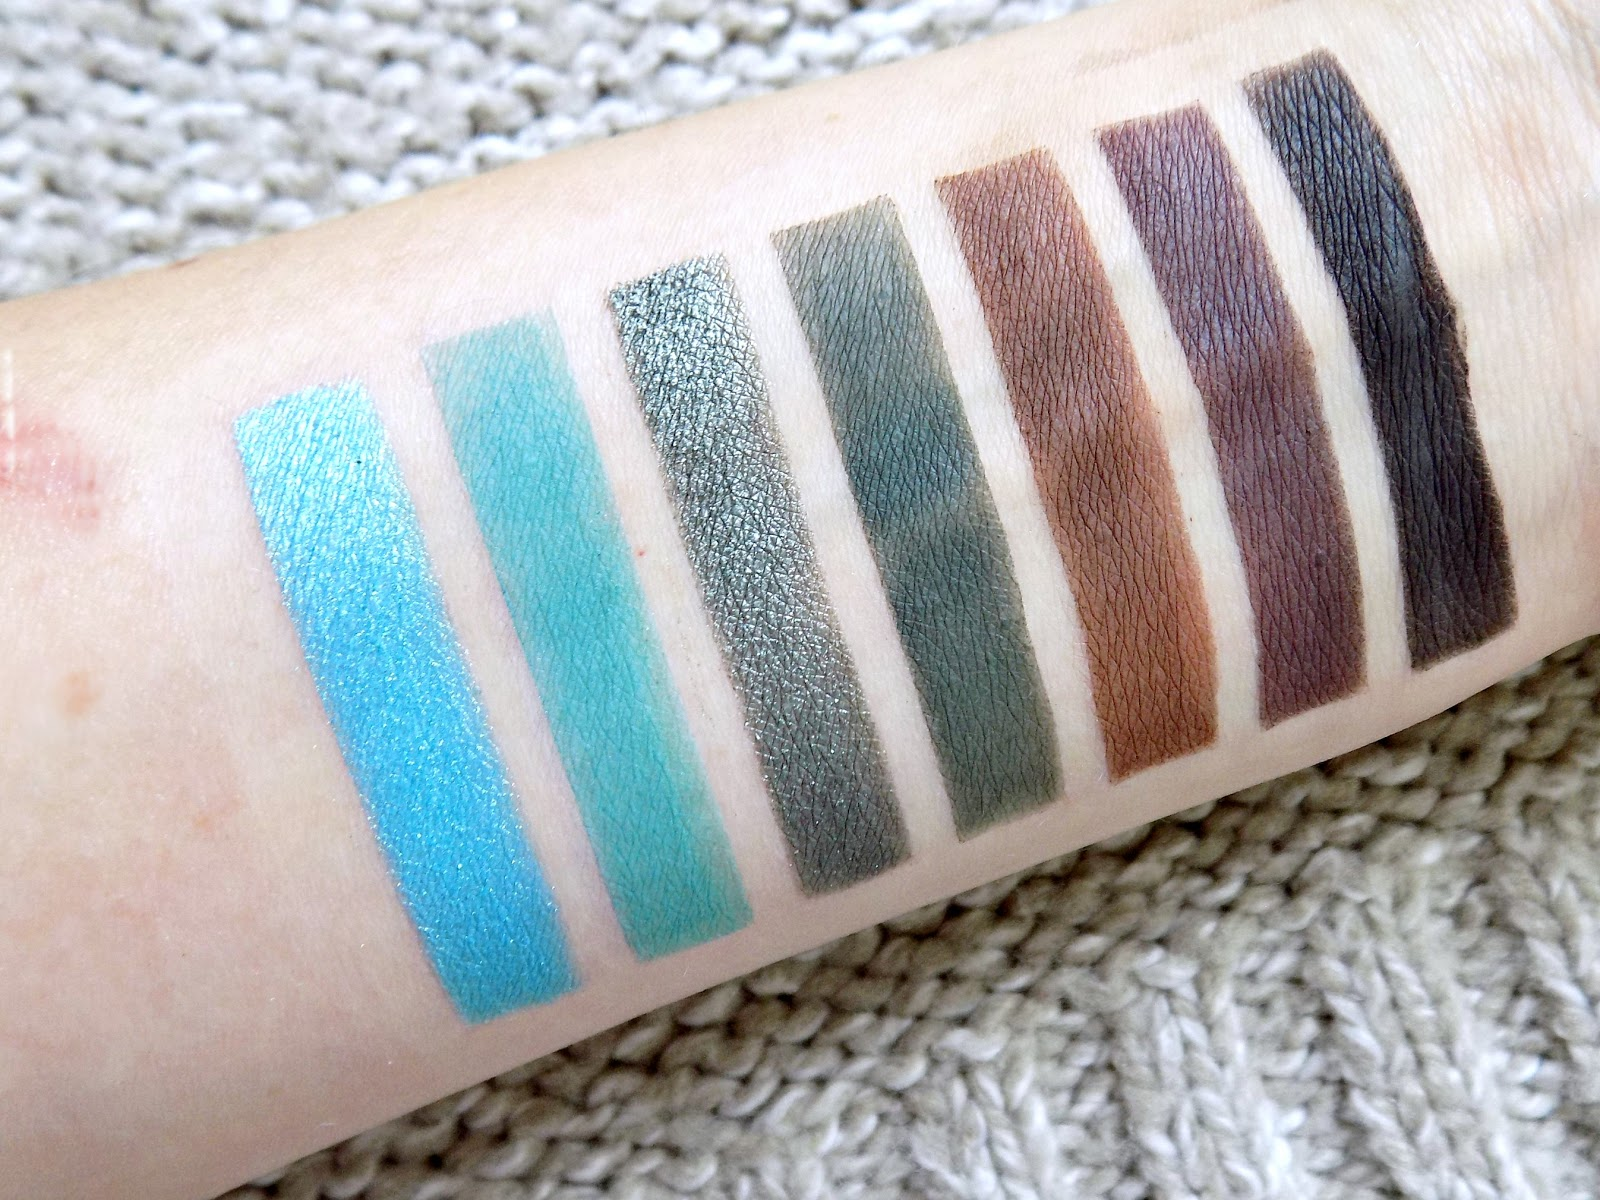 Jaclyn Hill X Morphe eyeshadow palette swatches